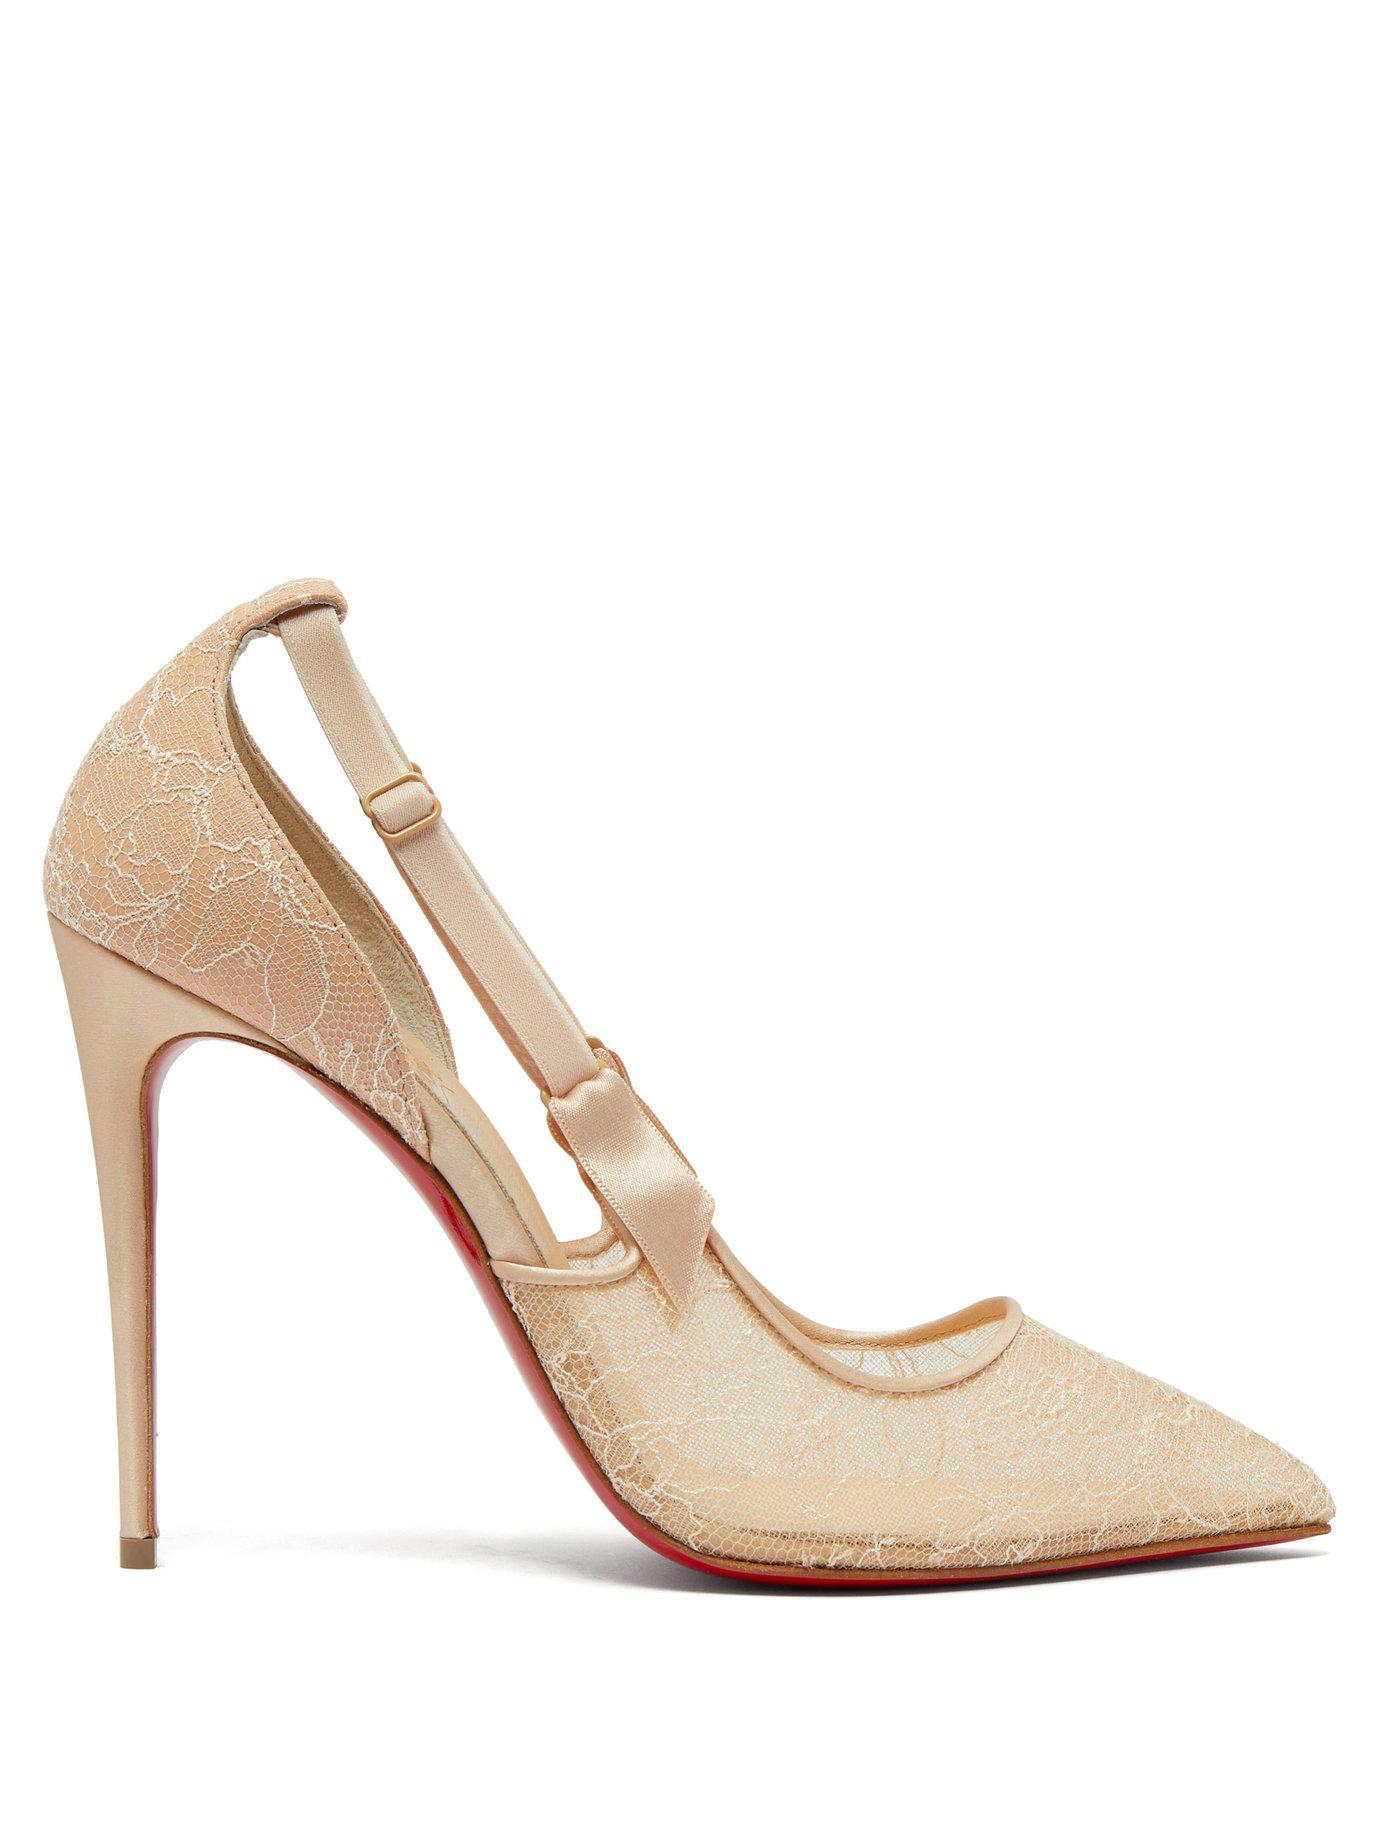 0ce8631acce Lyst - Christian Louboutin Hot Jeanbi 110 Lace Pumps in Natural